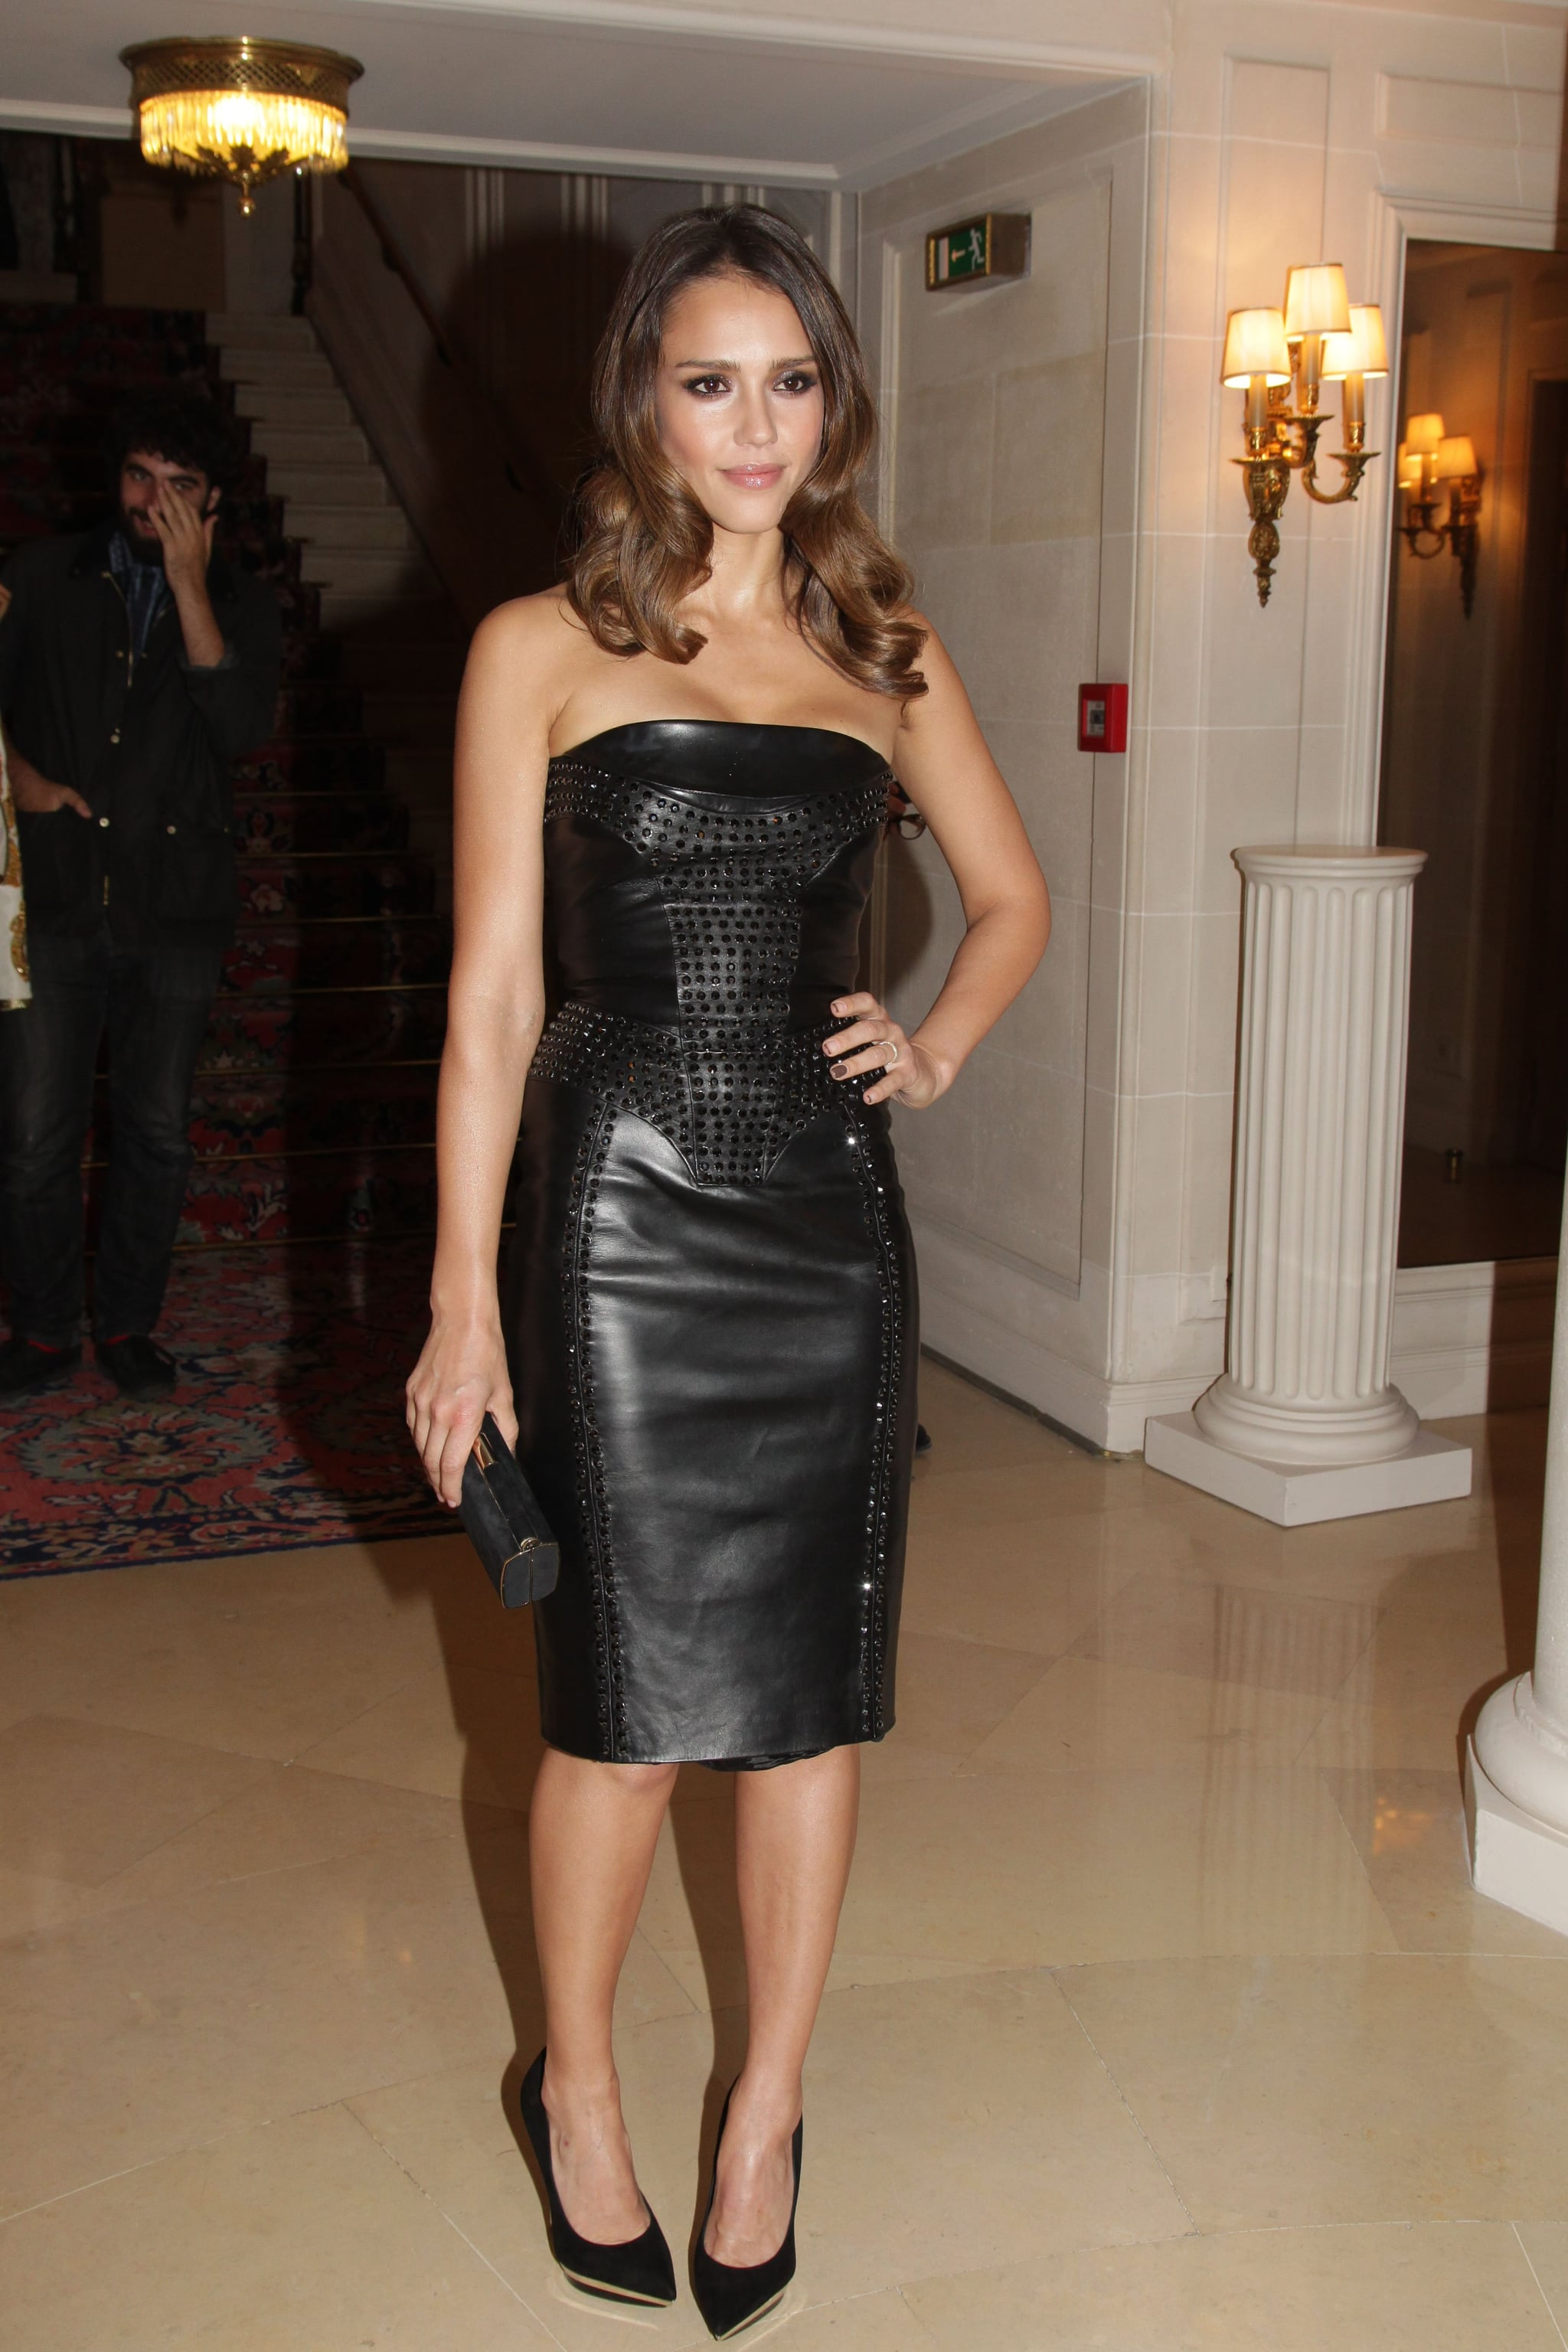 Jessica Alba struck at pose as she arrived at the Versace show for Paris Fashion Week.